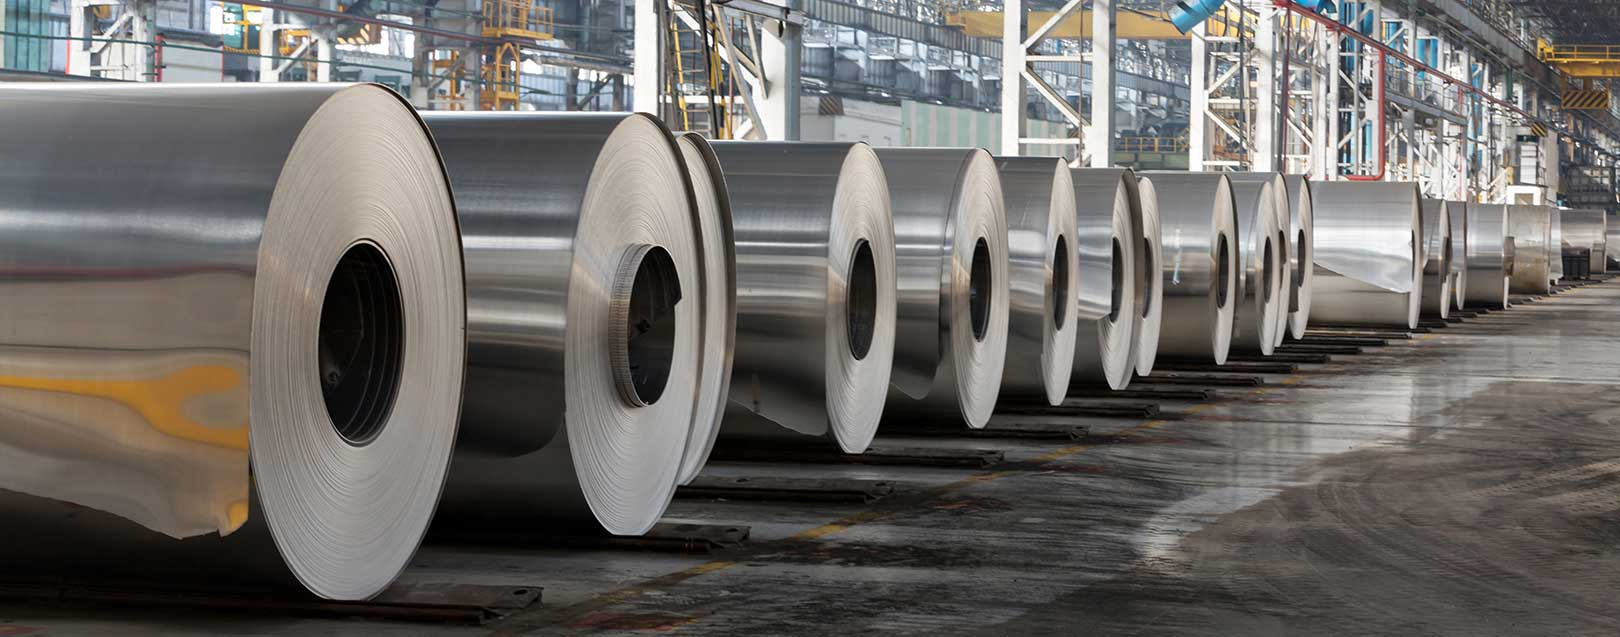 India has become a net exporter of steel: Steel Minister